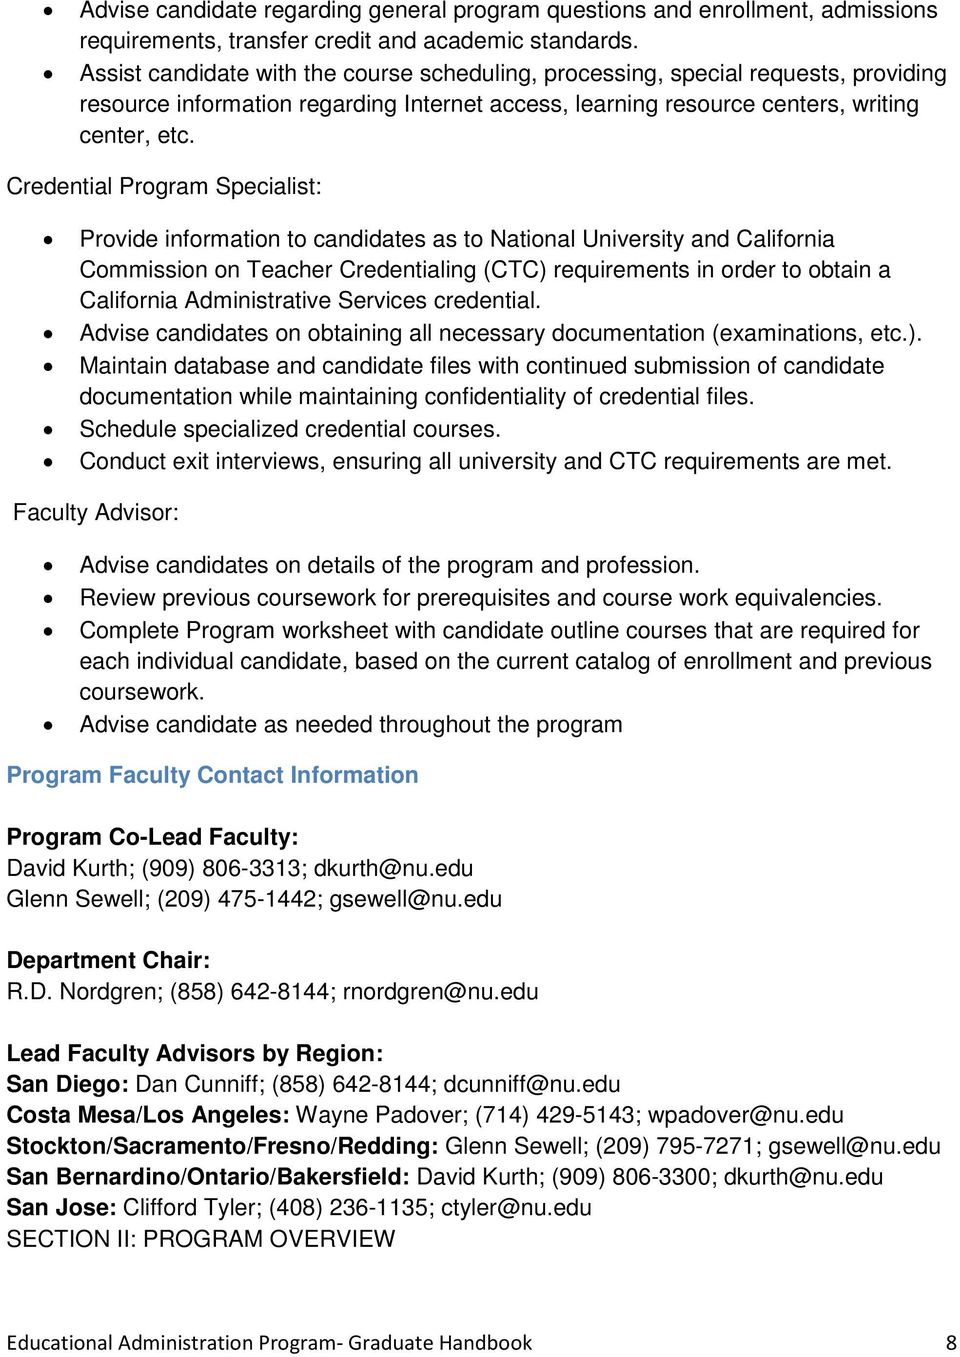 Credential Program Specialist: Provide information to candidates as to National University and California Commission on Teacher Credentialing (CTC) requirements in order to obtain a California